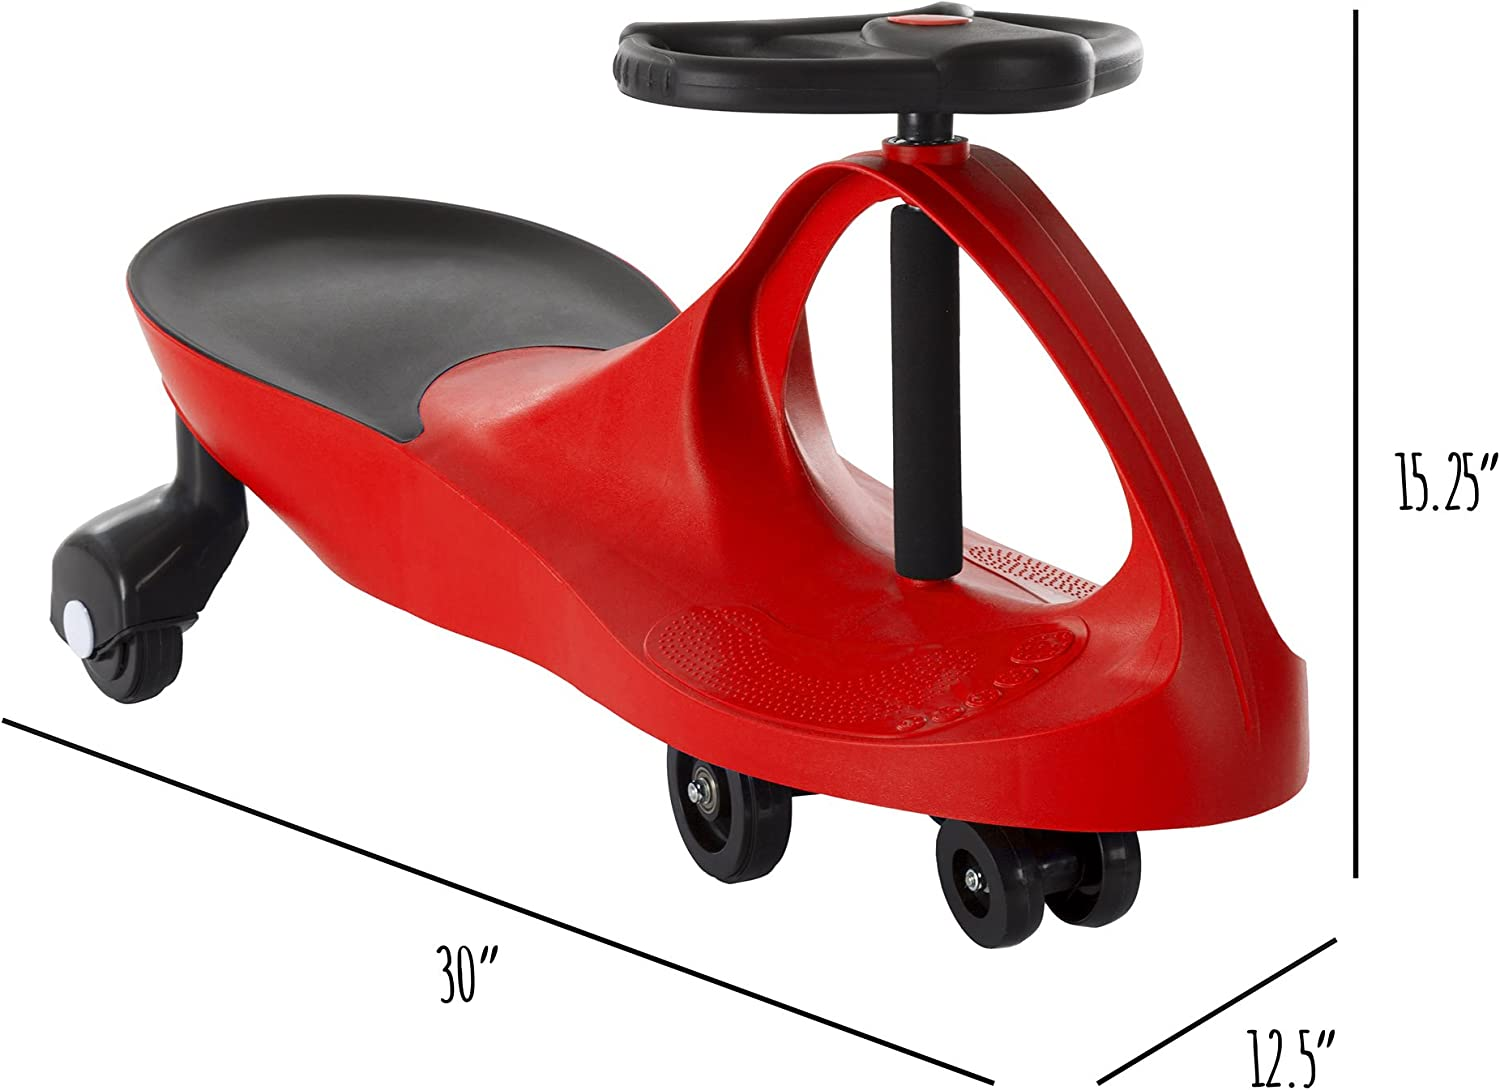 No Batteries 2 Years Old and Up Kids for Toddlers Ride On Car Wiggle Movement to Steer Zigzag Car-Green Gears or Pedals Uses Twist Turn